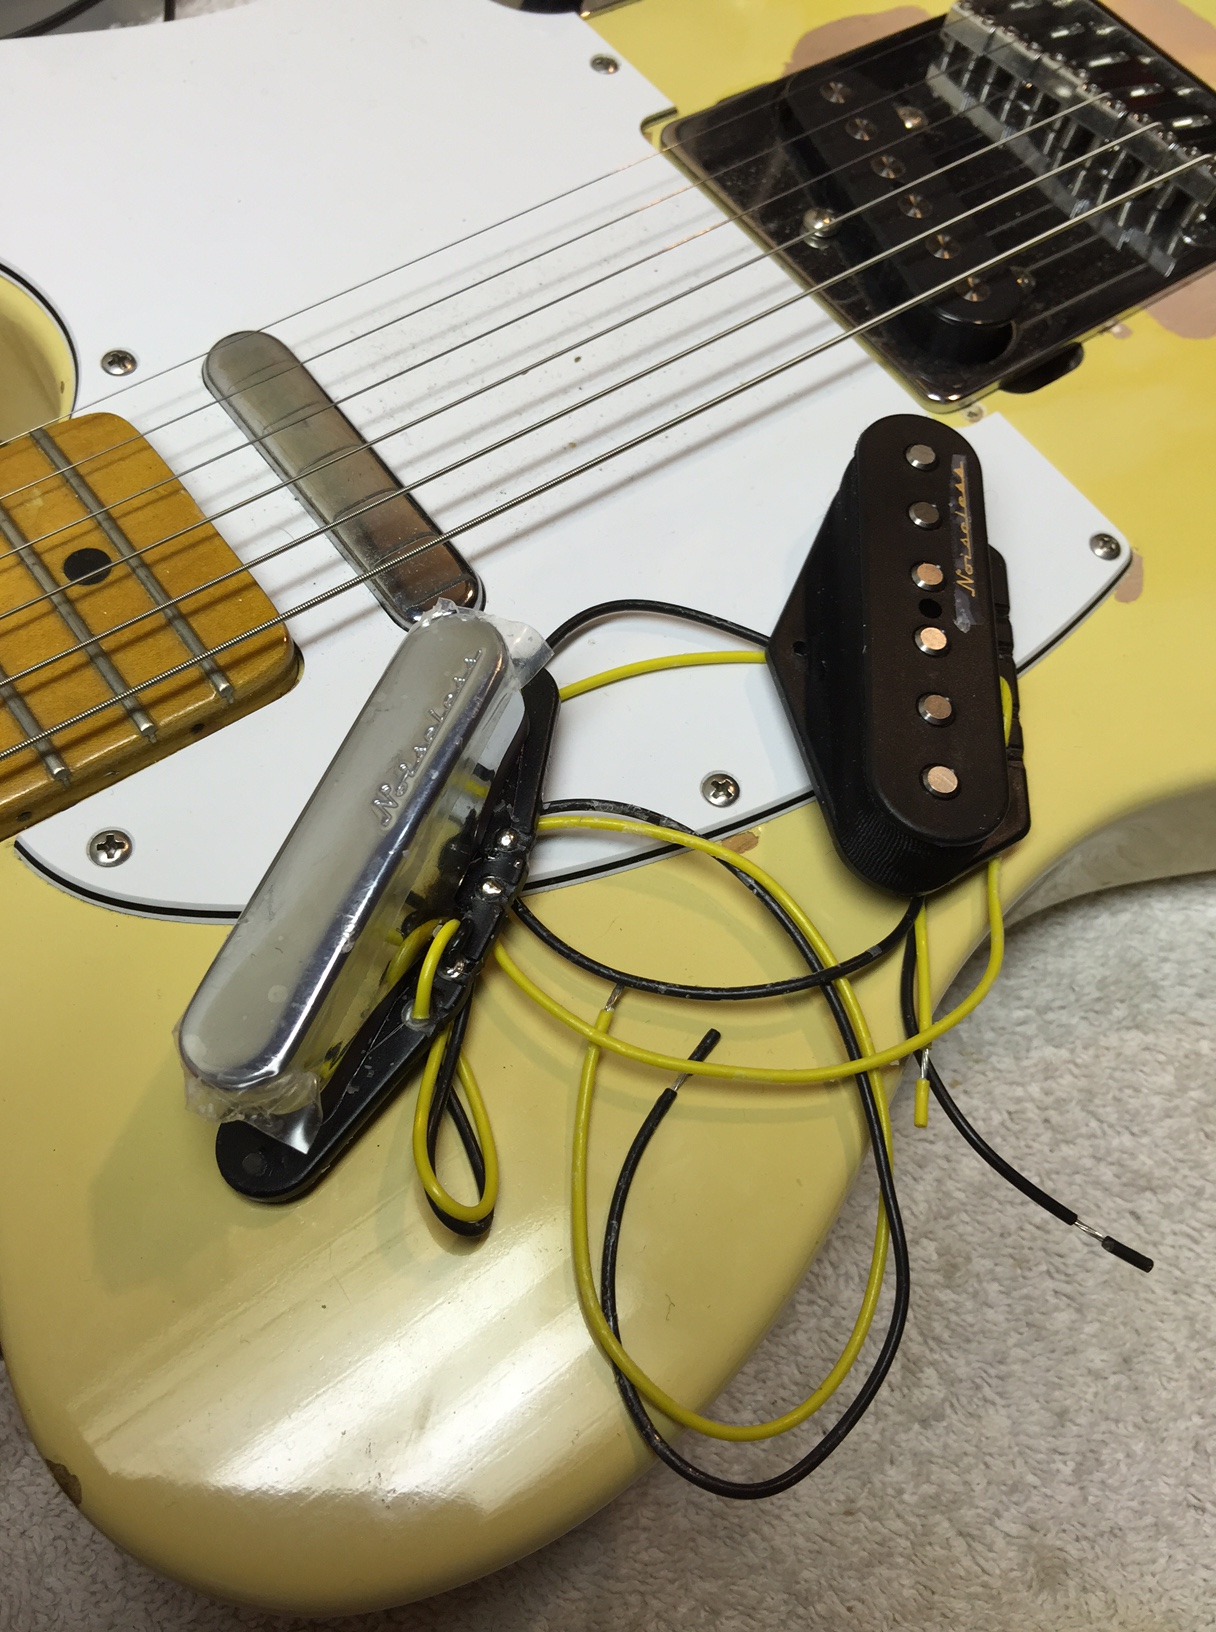 Rewiring a Telecaster with a four-way switch | Hot Bottles on fender cyclone ii wiring diagram, vintage diagram, fender scn pickup wiring diagram, active pickups wiring diagram, fender pot wiring, fender stratocaster parts diagram, fender s1 switch wiring diagram, fender guitar wiring diagrams, fender jaguar bass wiring diagram,